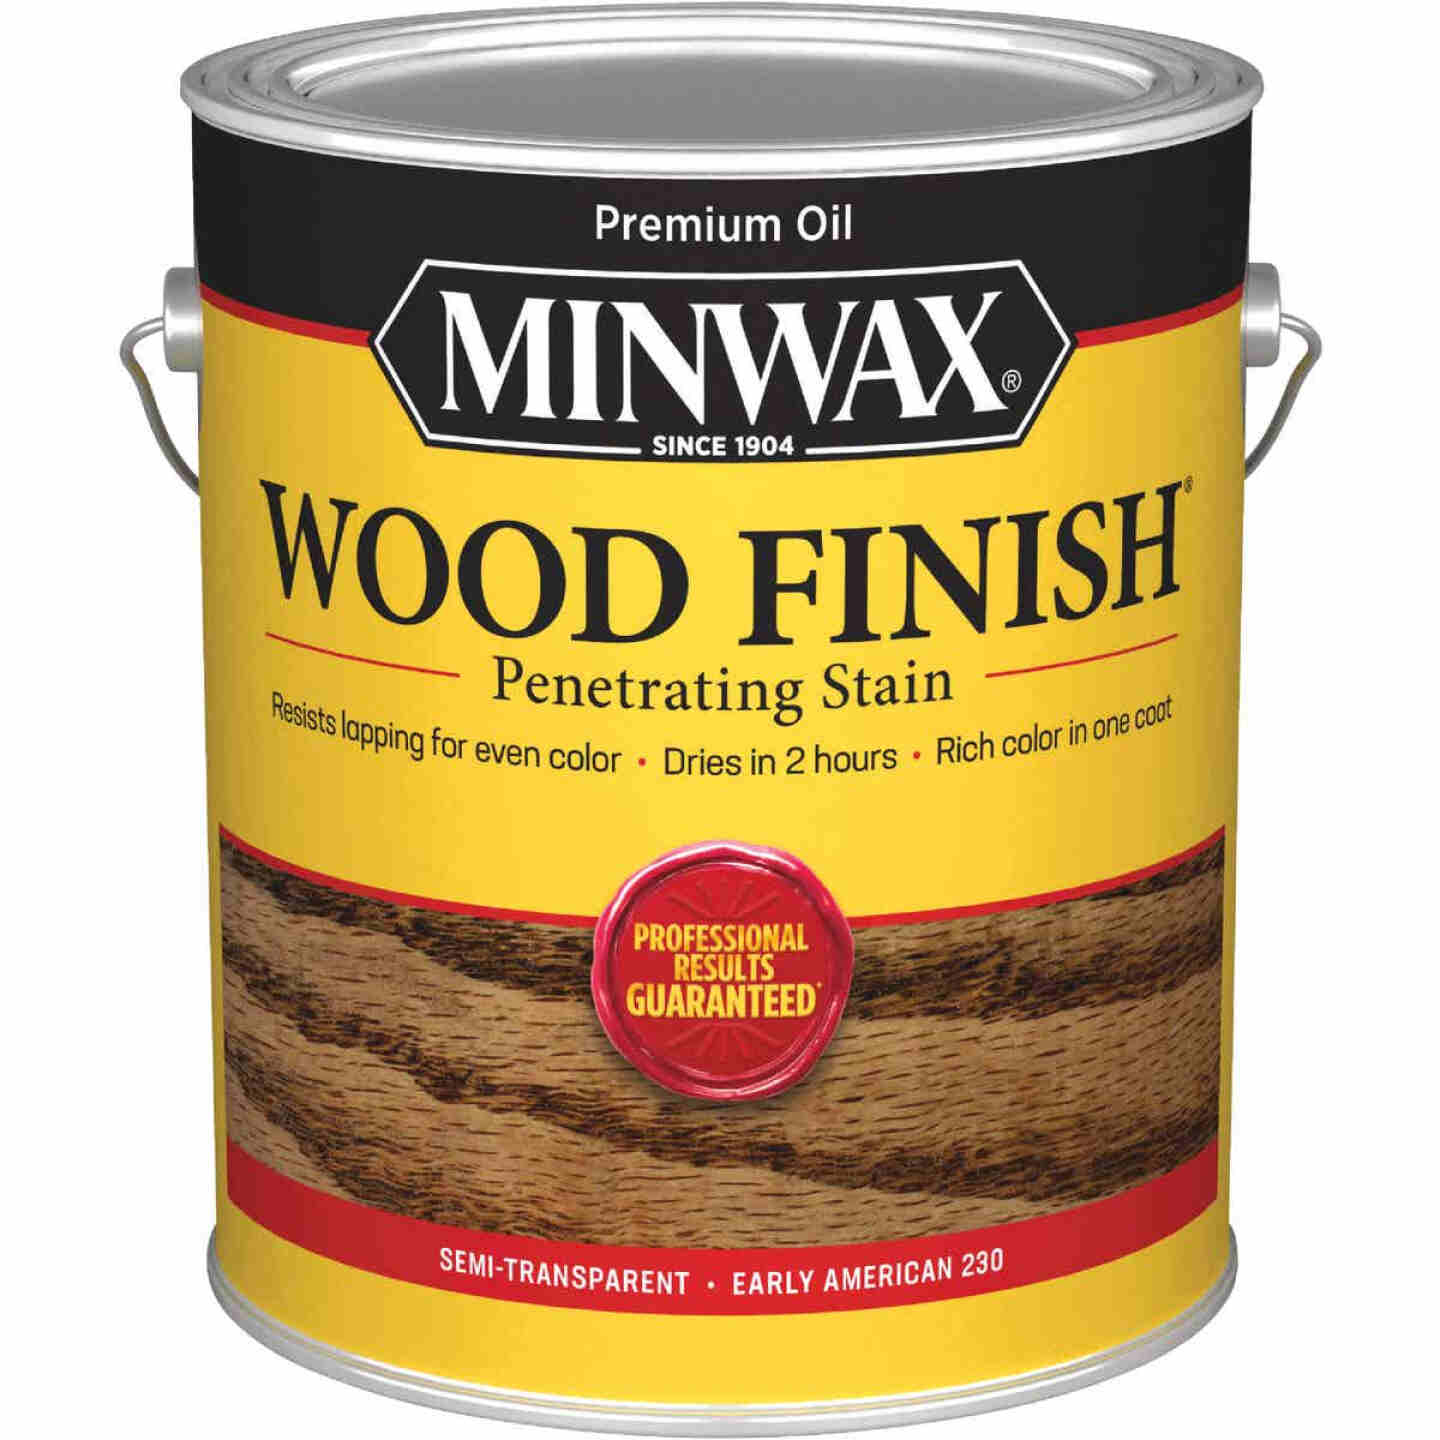 Minwax Wood Finish Penetrating Stain, Early American, 1 Gal. Image 1